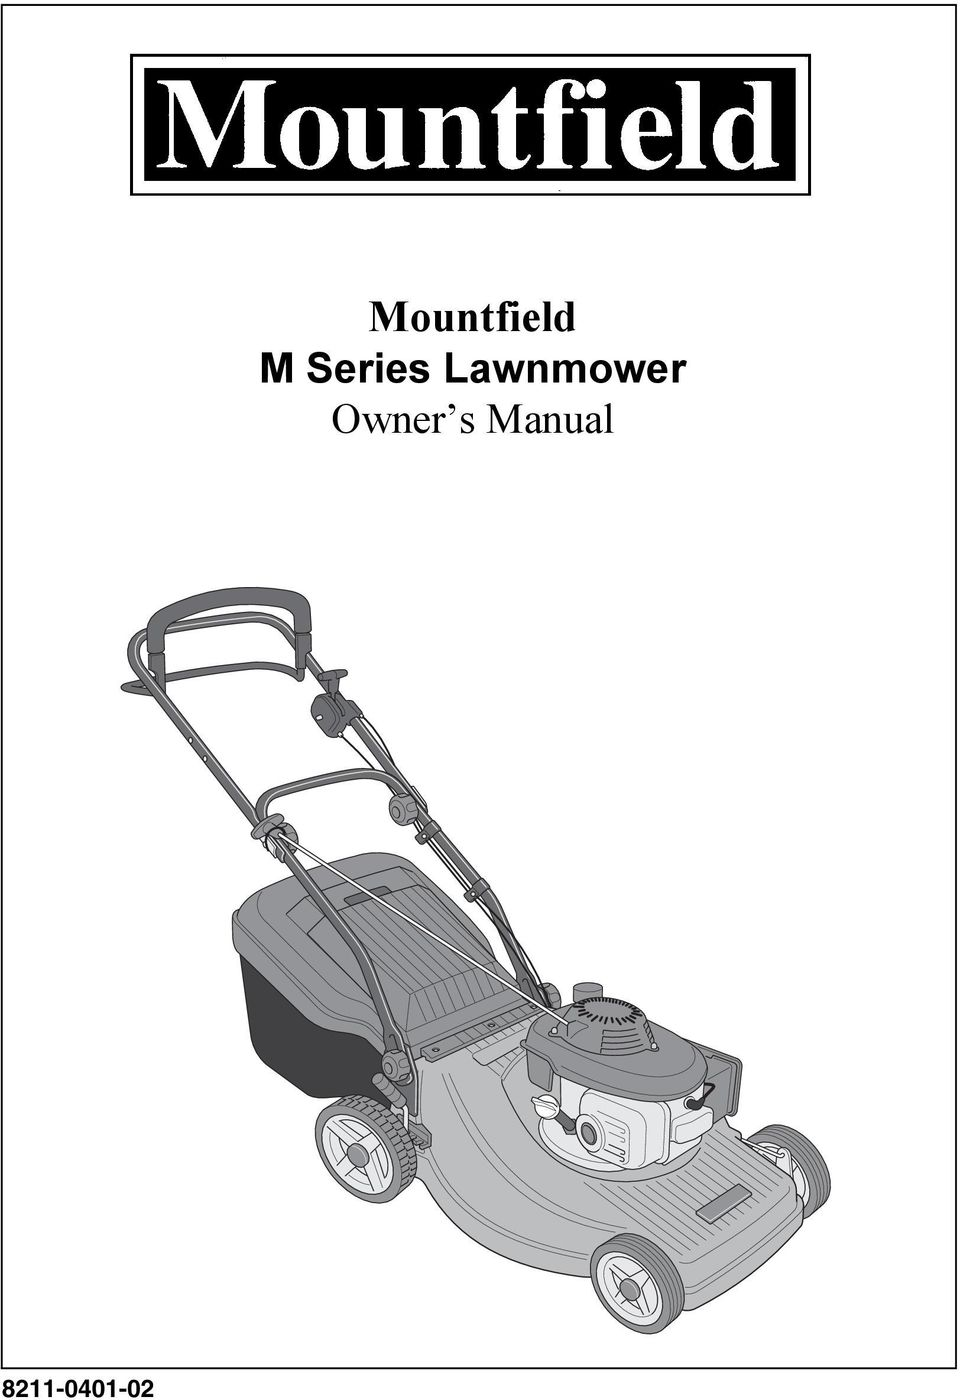 Mountfield Trimmer Manual 2001 Volvo S60 Electrical Wiring Diagram 8211 Harness And Schematics Sp474 Array M Series Lawnmower Owner S Pdf Rh Docplayer Net